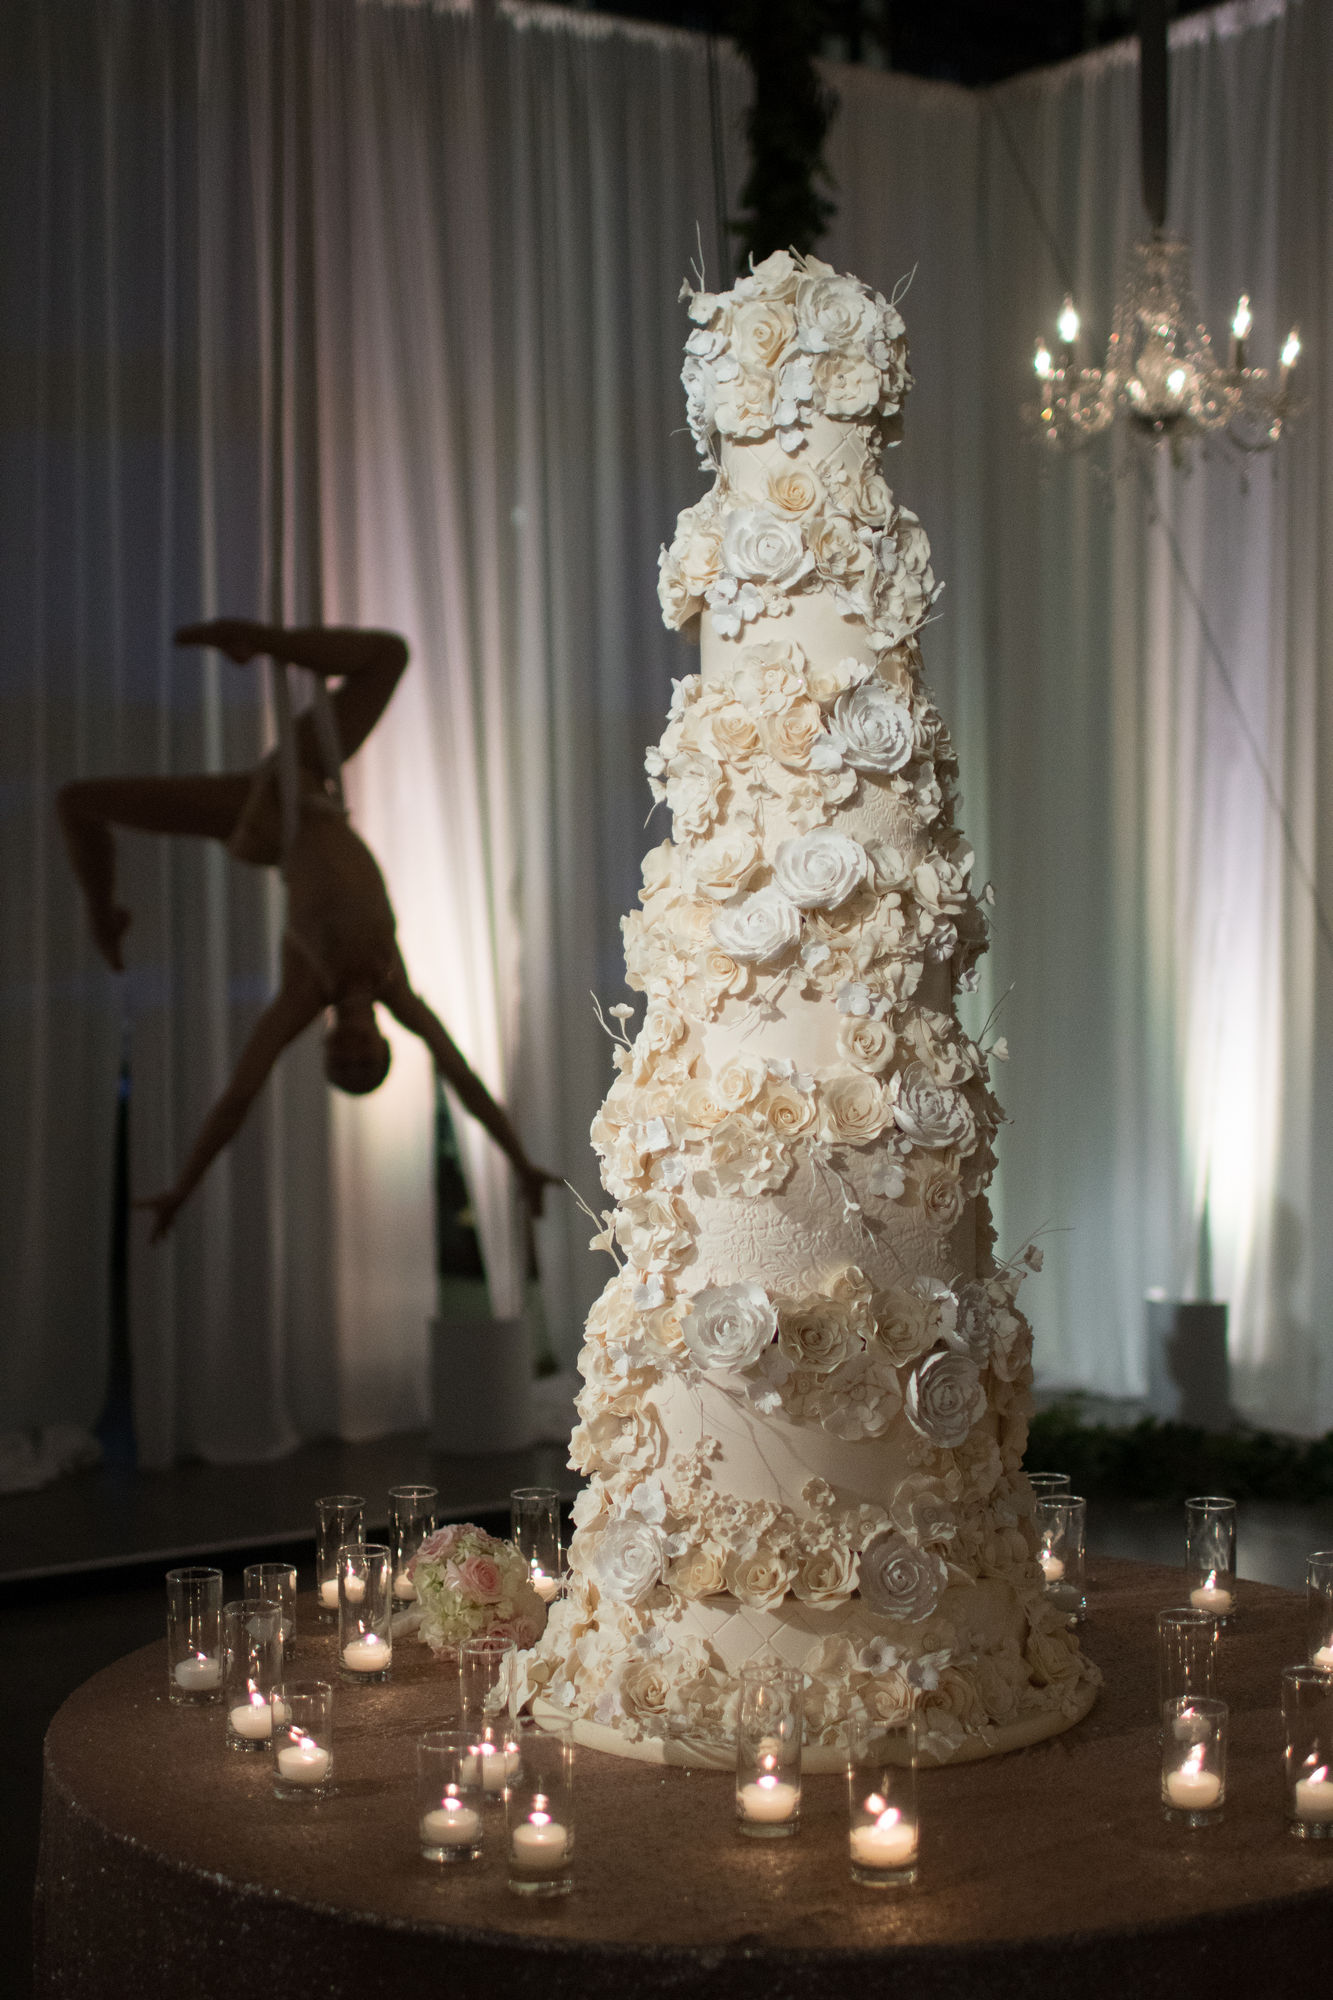 Tall opulent same sex gay wedding cake with hundreds of sugar flowers